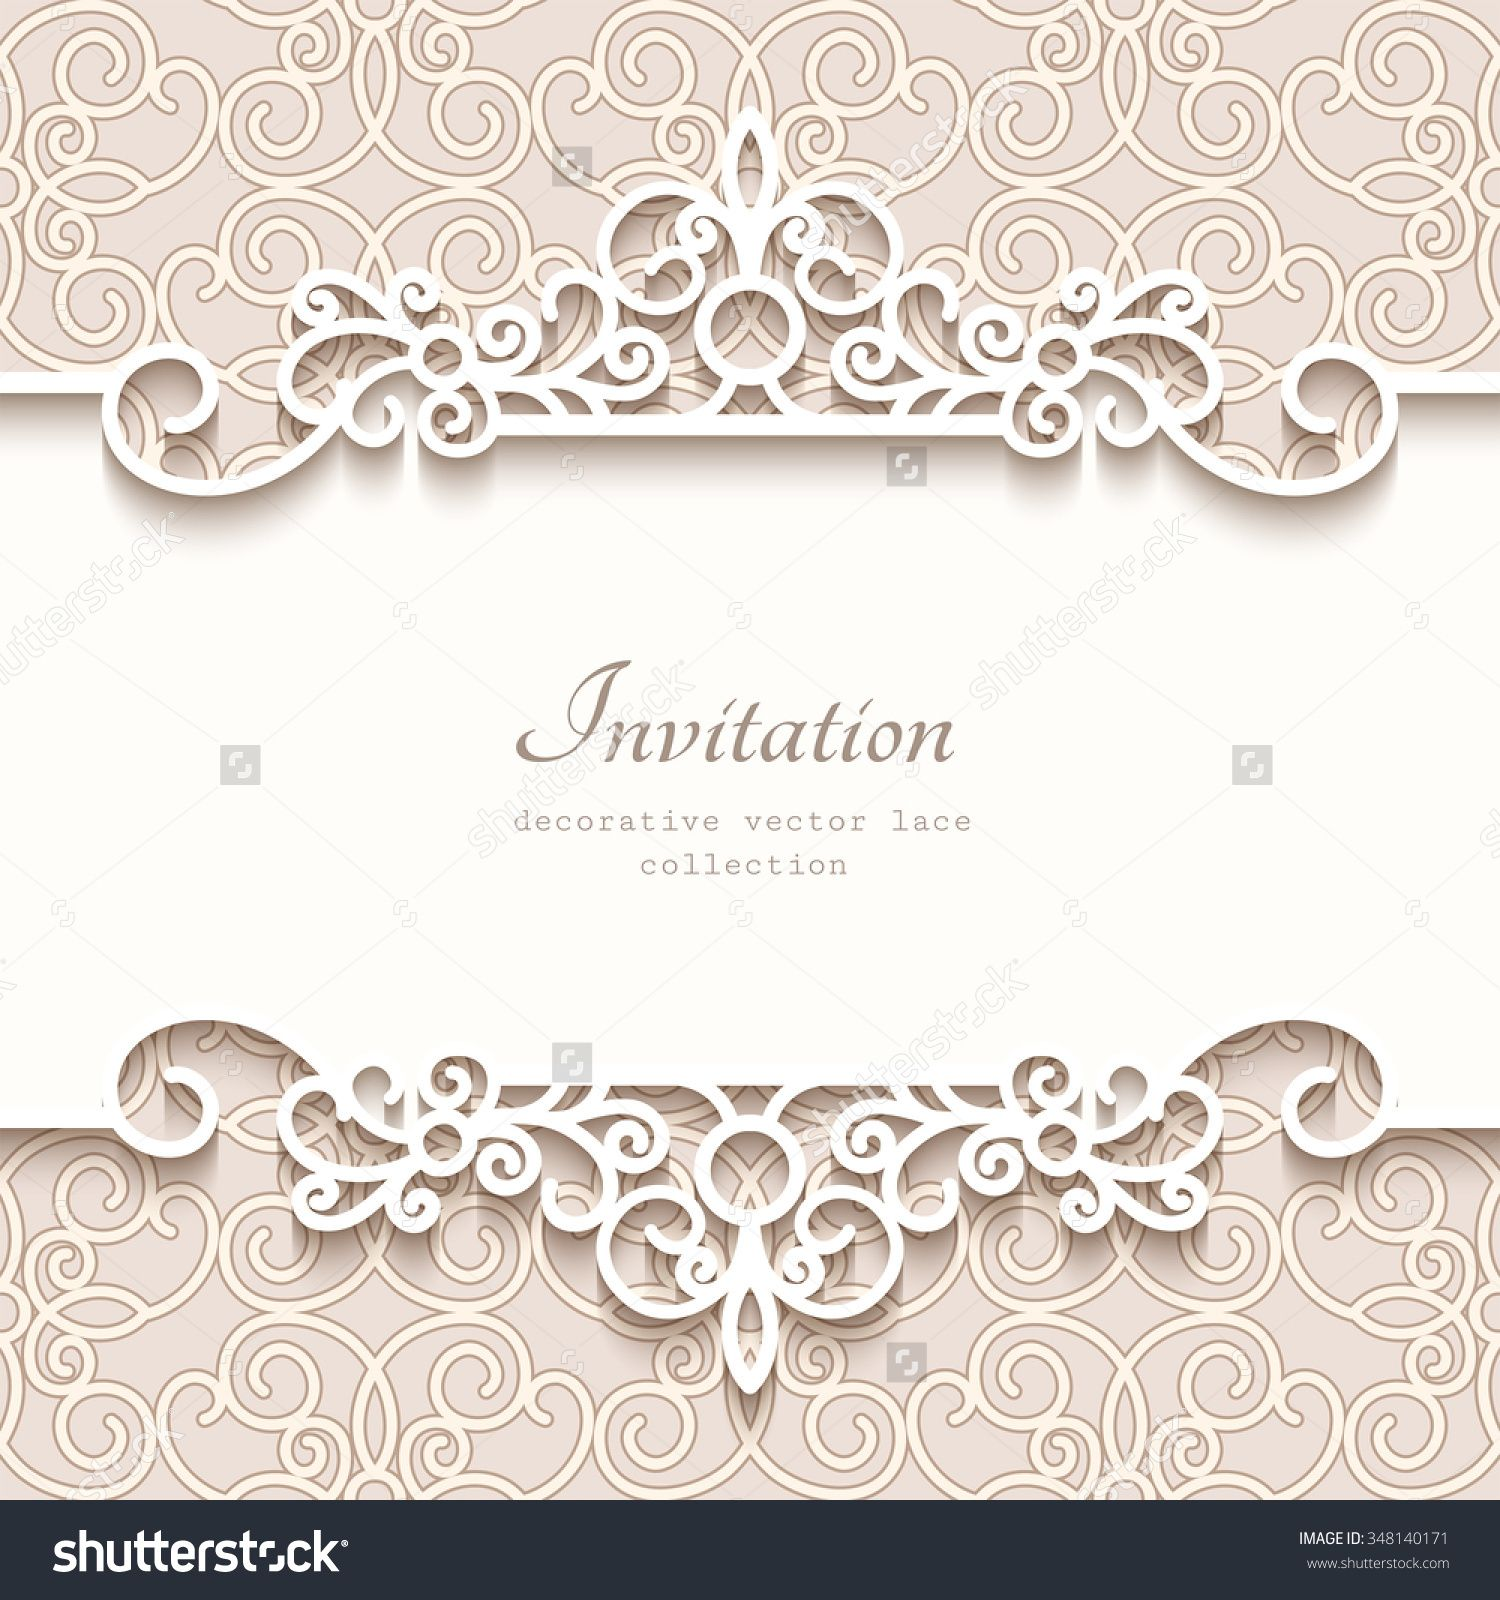 Vintage Vector Background With Paper Border Decoration, Divider, Header,  Ornamental Frame Template,  Paper Border Designs Templates